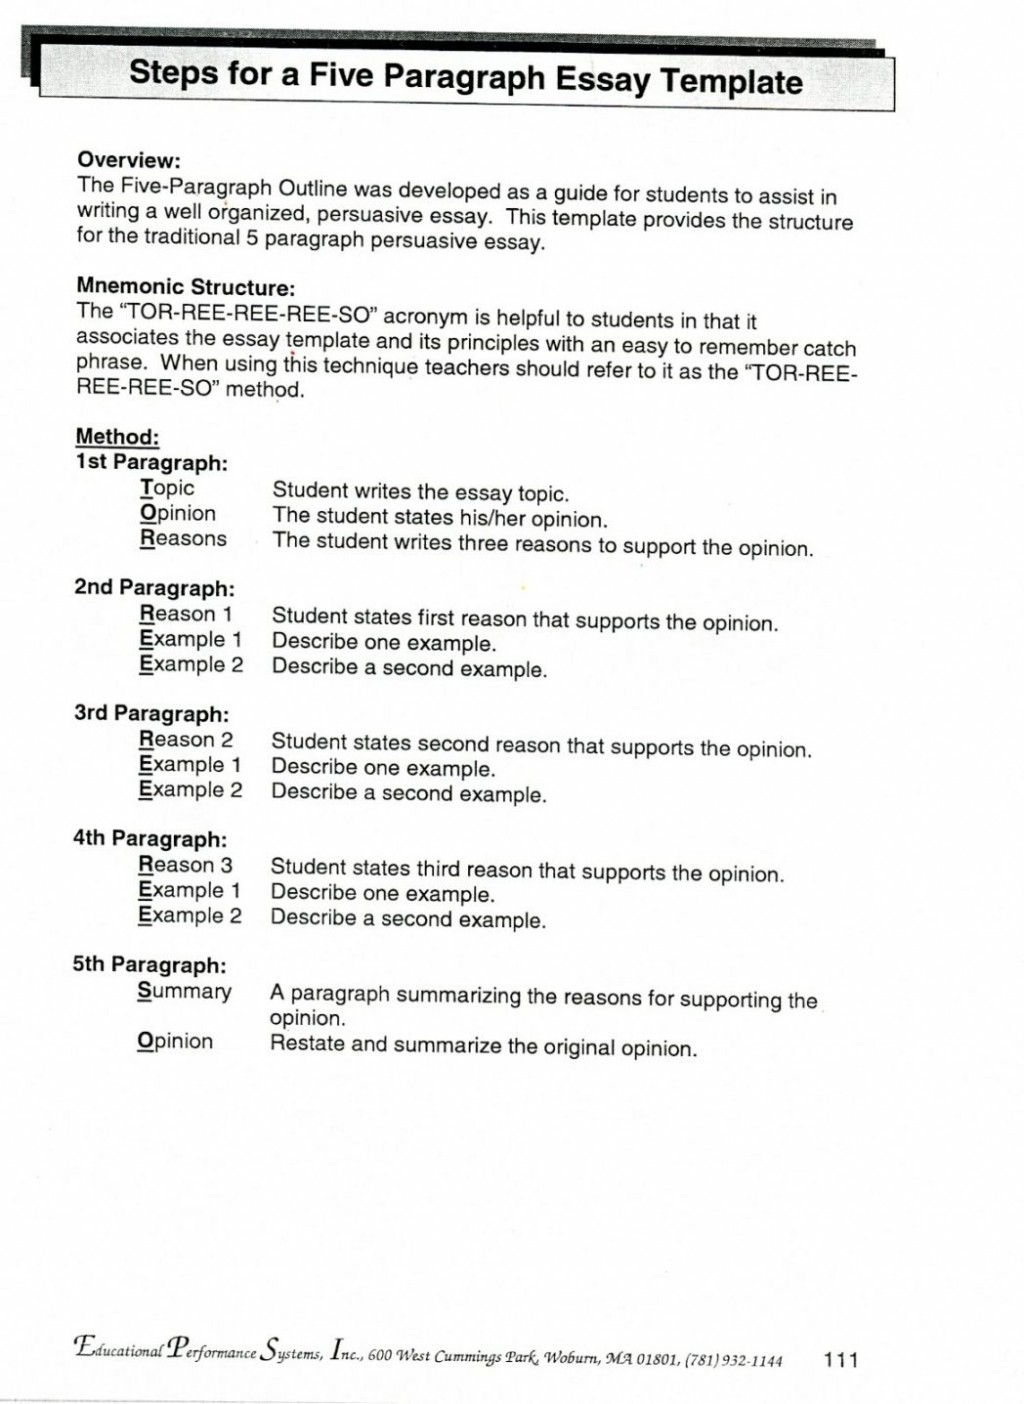 017 Persuade Essay Writing Persuasive Argumentative Sample 5th Grade Exa Dareles Informative Samples Pdf Descriptive Expository Opinion 1048x1437 For Impressive Essays Written By Fifth Graders A Prompts Large